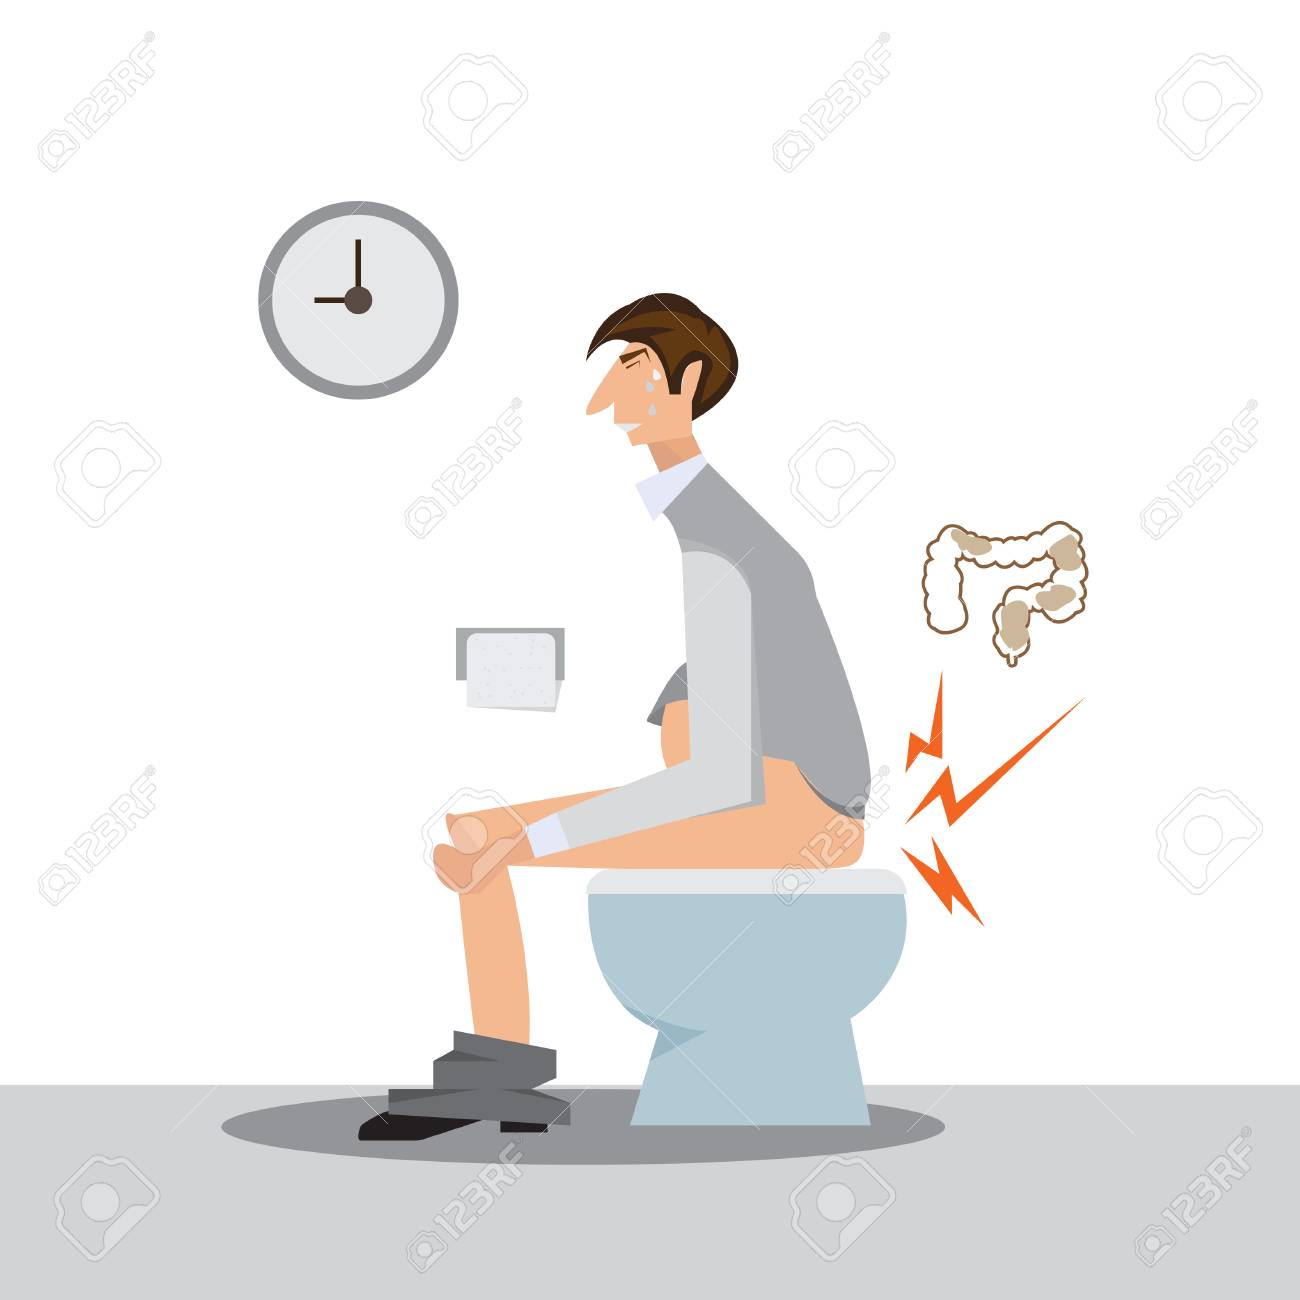 man sitting on a toilet concept. - 91945862